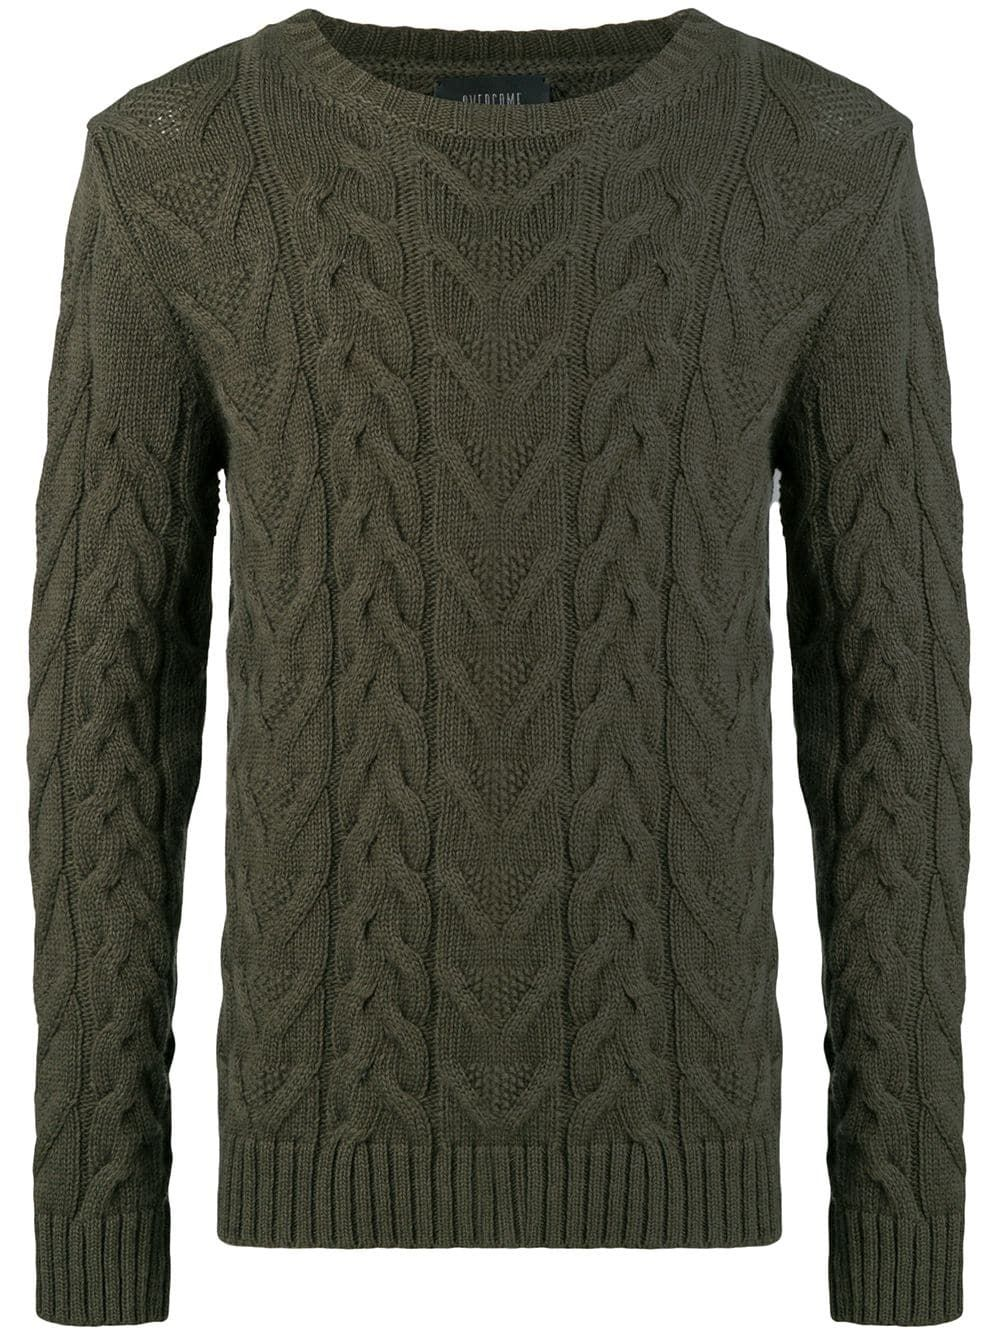 Overcome Chunky Knit Jumper #chunkyknitjumper